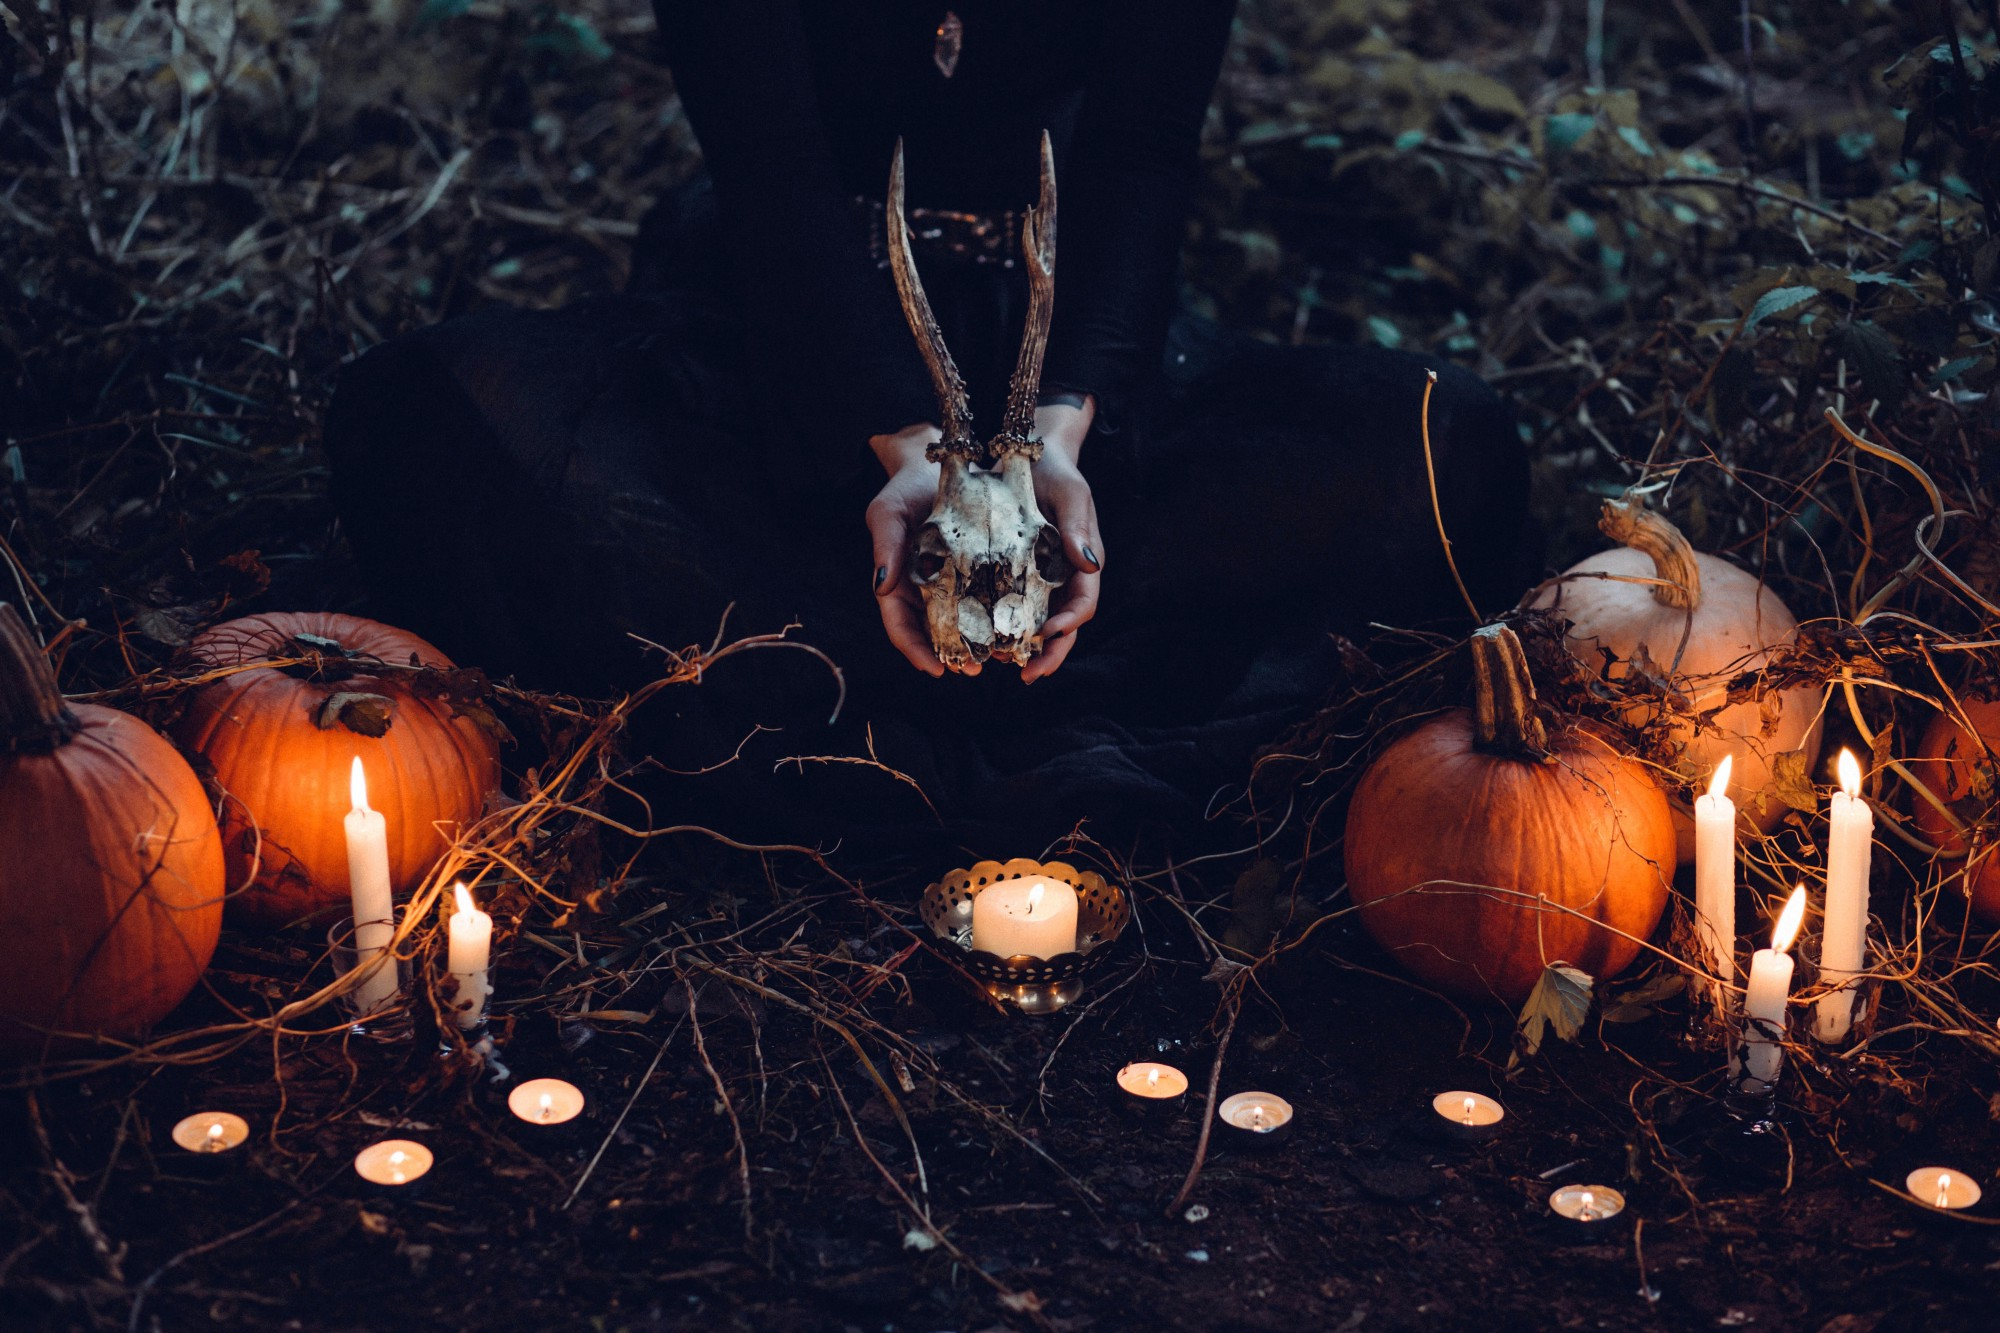 scary halloween story on creativity and tv strangelove letters image credit unsplash com collections 286795 halloween photo y dcjarwthy